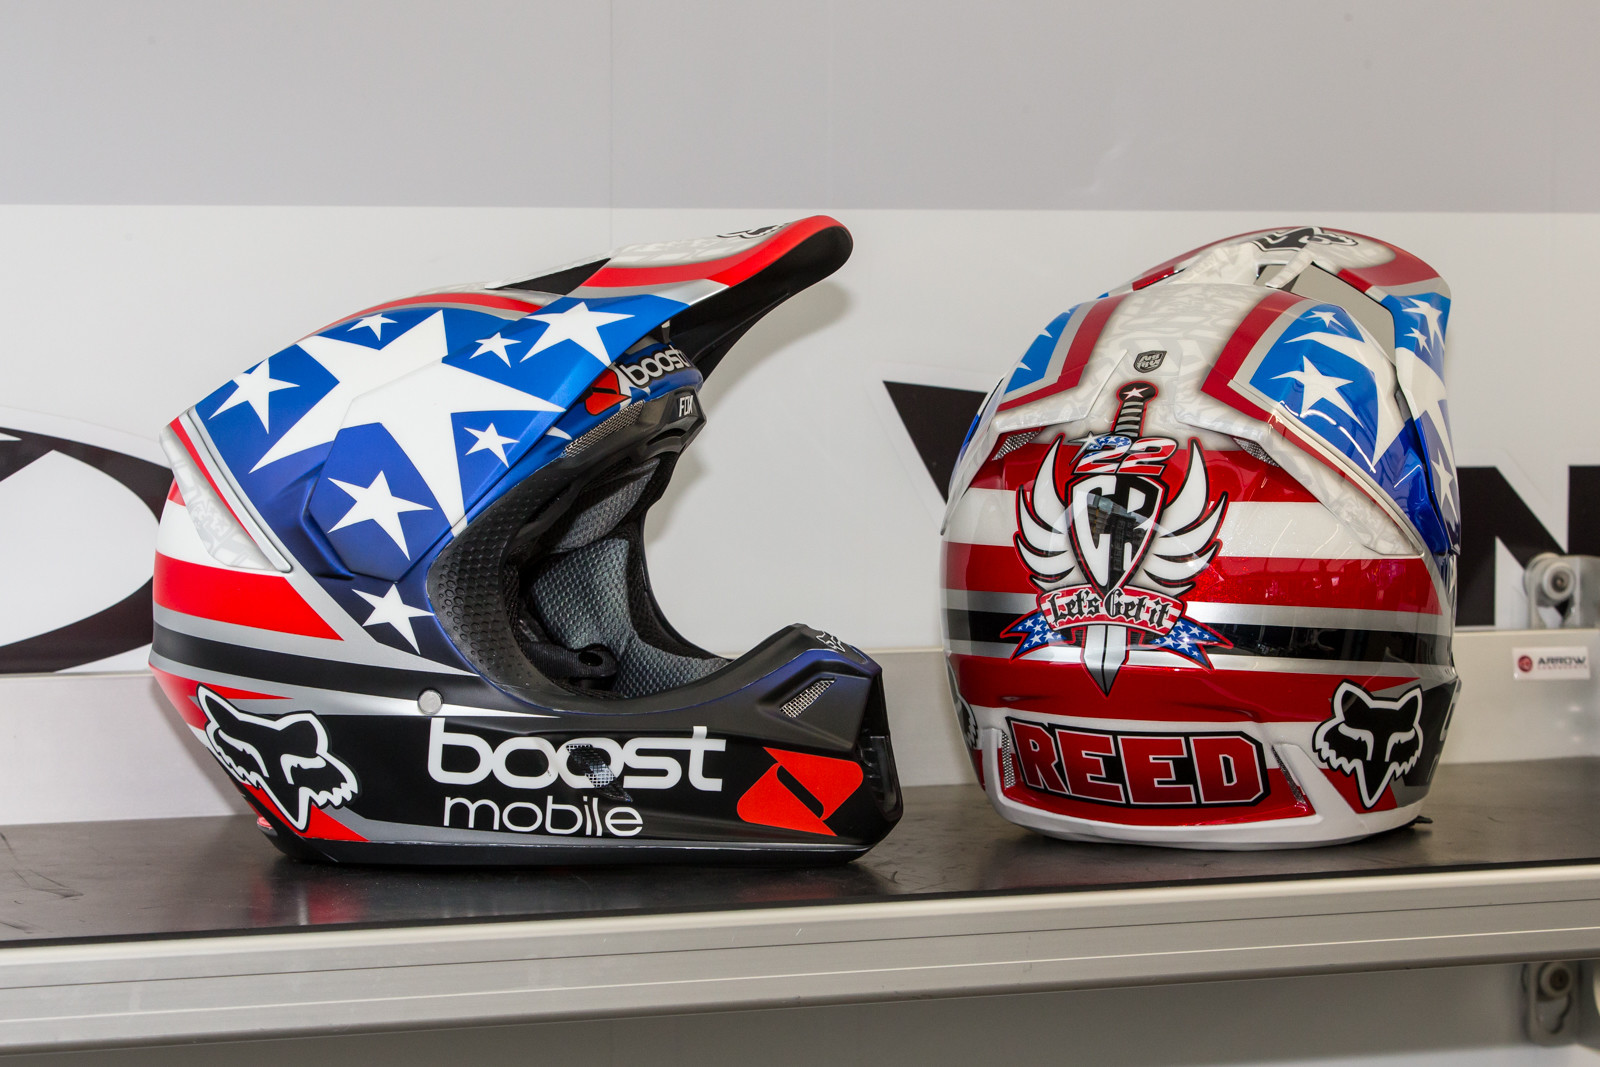 Chad paid tribute in another way as well, honoring Nicky Hayden with a replica helmet, similar to what Nicky would use.